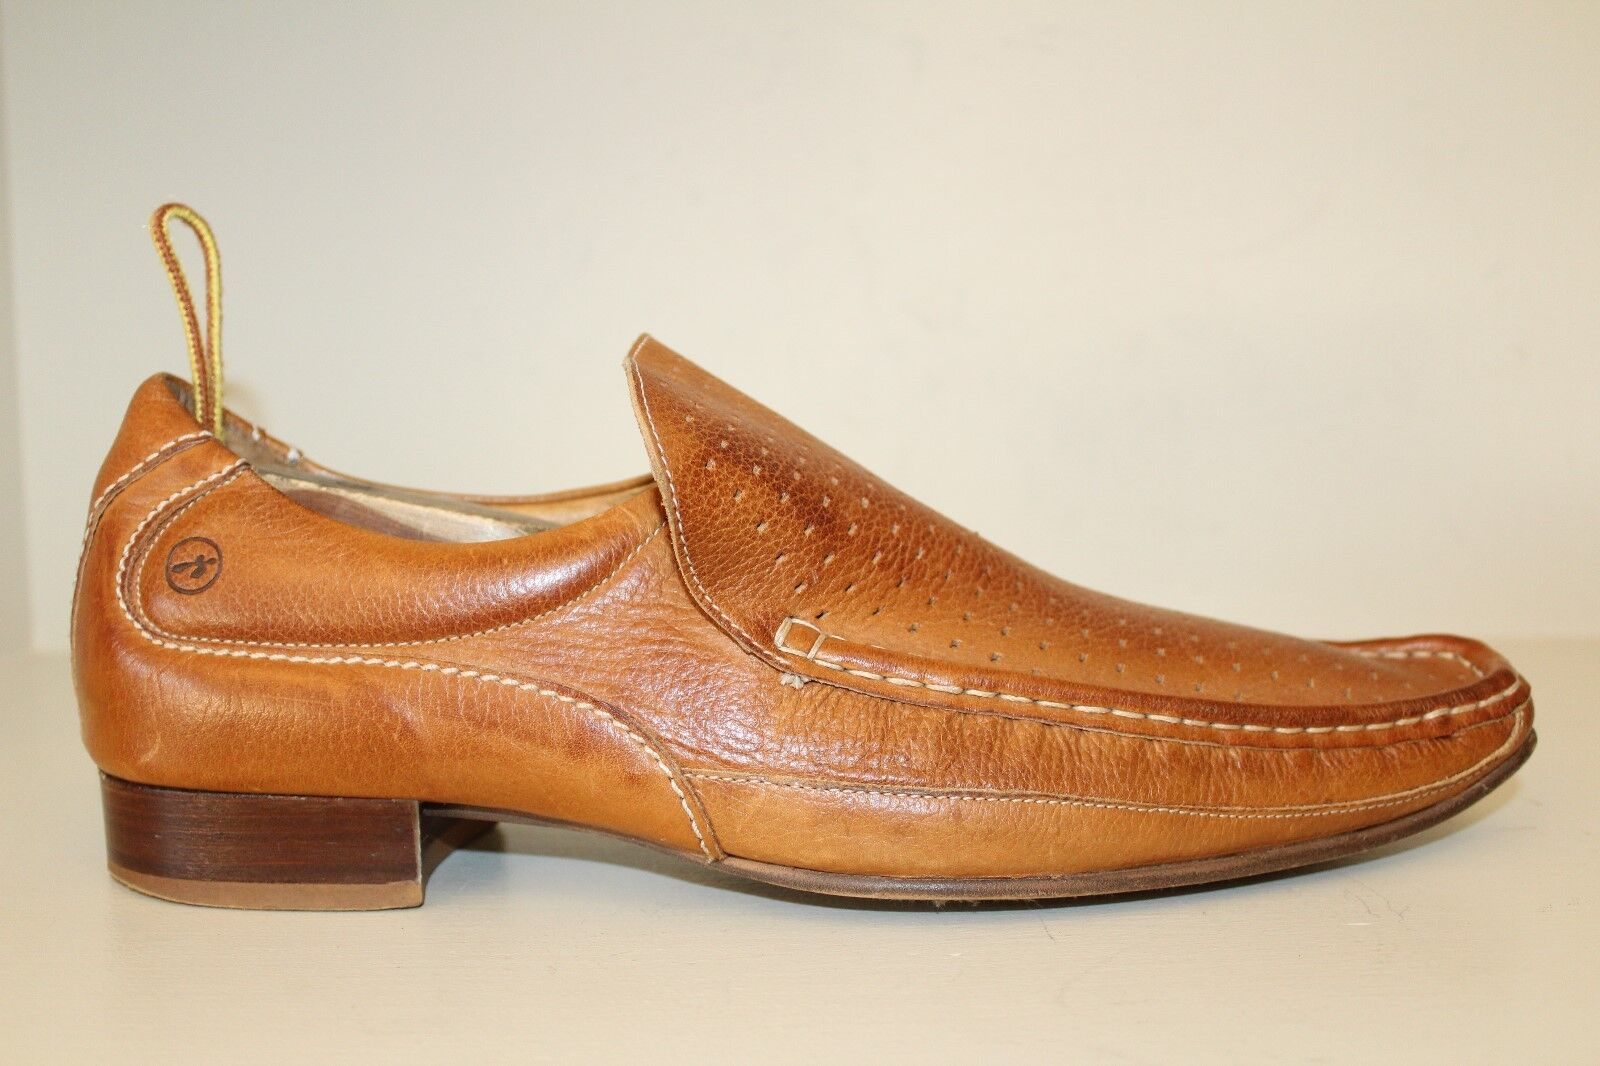 Bronx Mens Loafer shoes Sz US 10.5-11   Brown Leather Slip On Pointed Toe